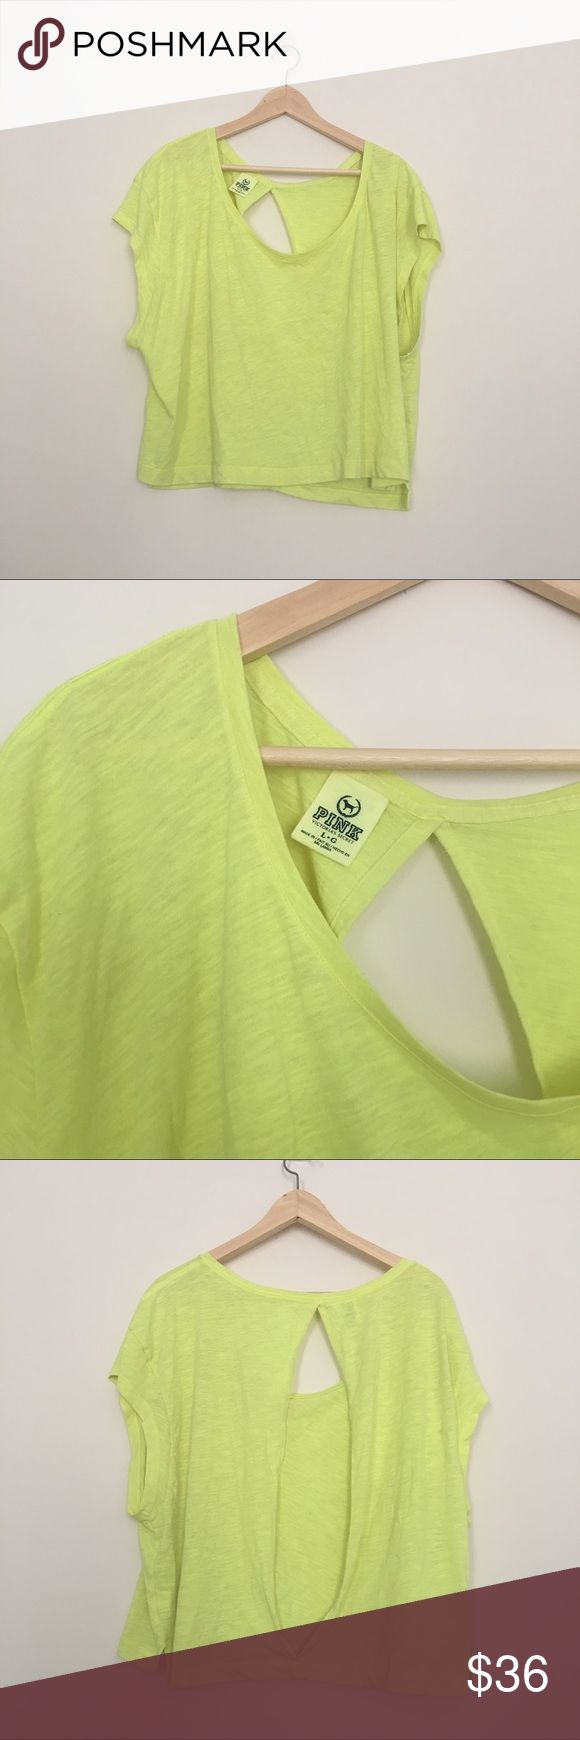 Pink VS neon yellow top Excellent flawless condition neon yellow top with opening in the back PINK Victoria's Secret Tops Tees - Short Sleeve